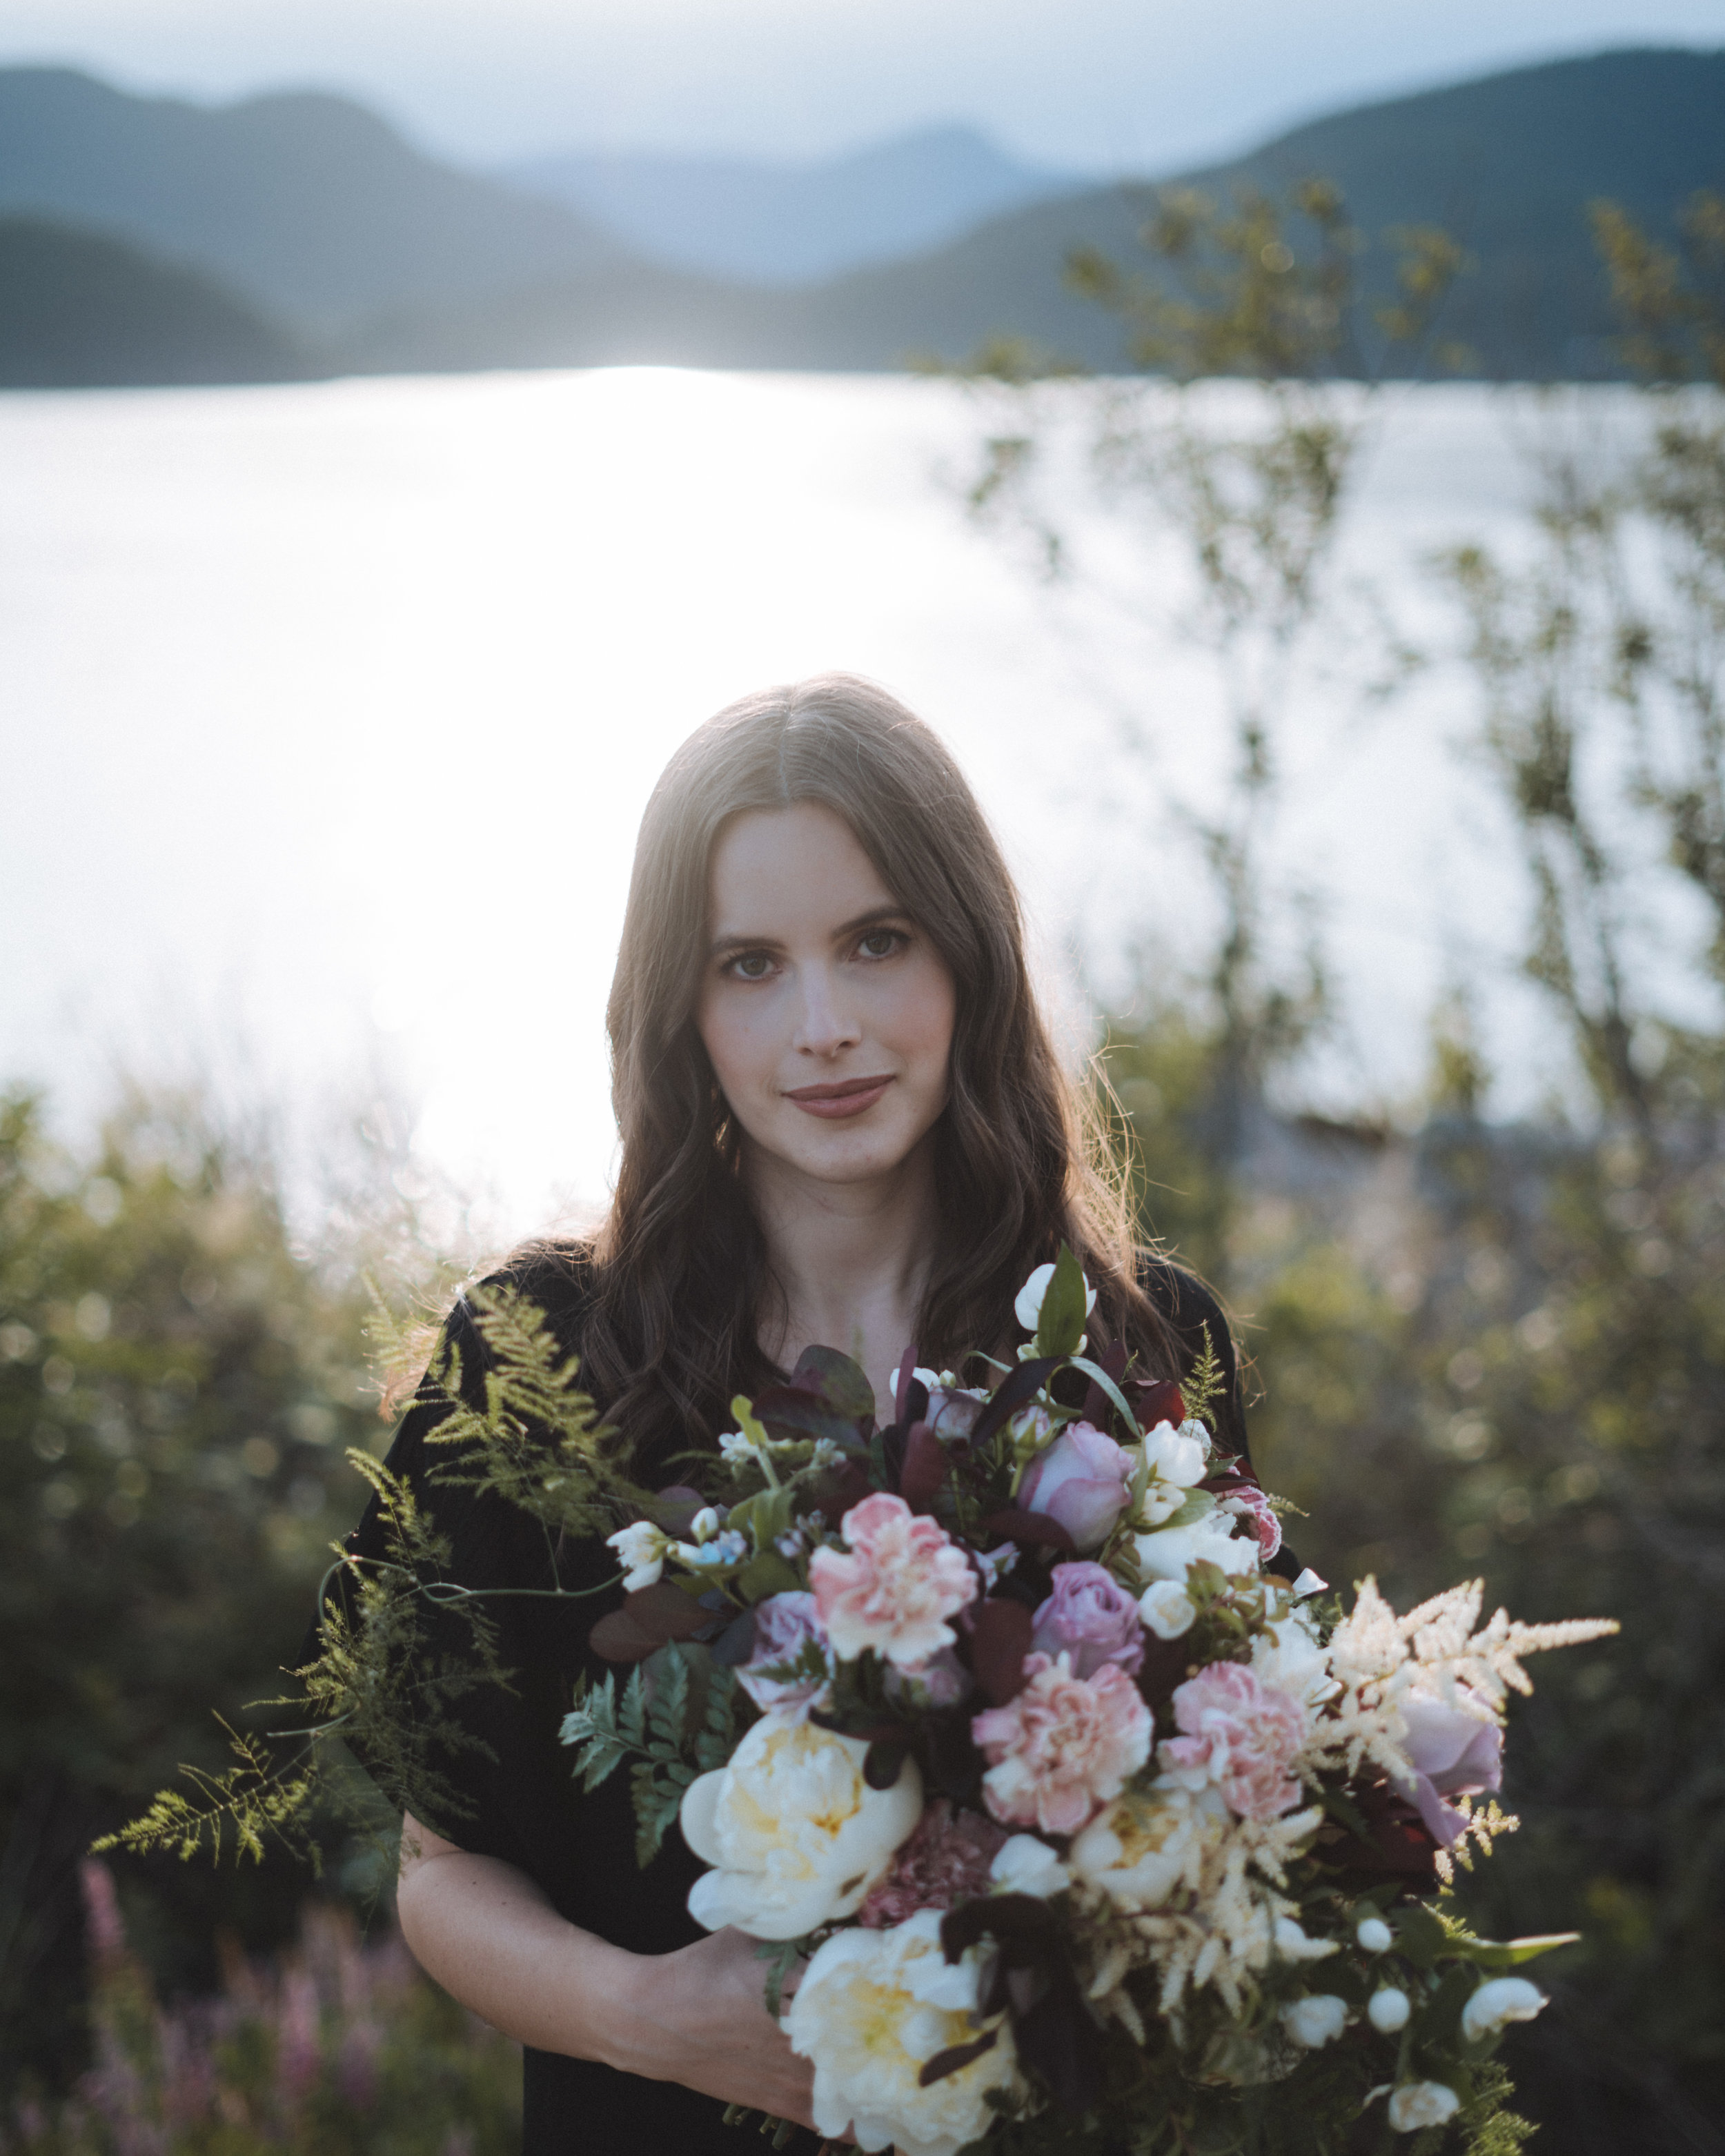 Vancouver-Canada-Travel-Elopement-Adventure-Wedding-Bouquet-Photographer-Emma-Rae.jpg